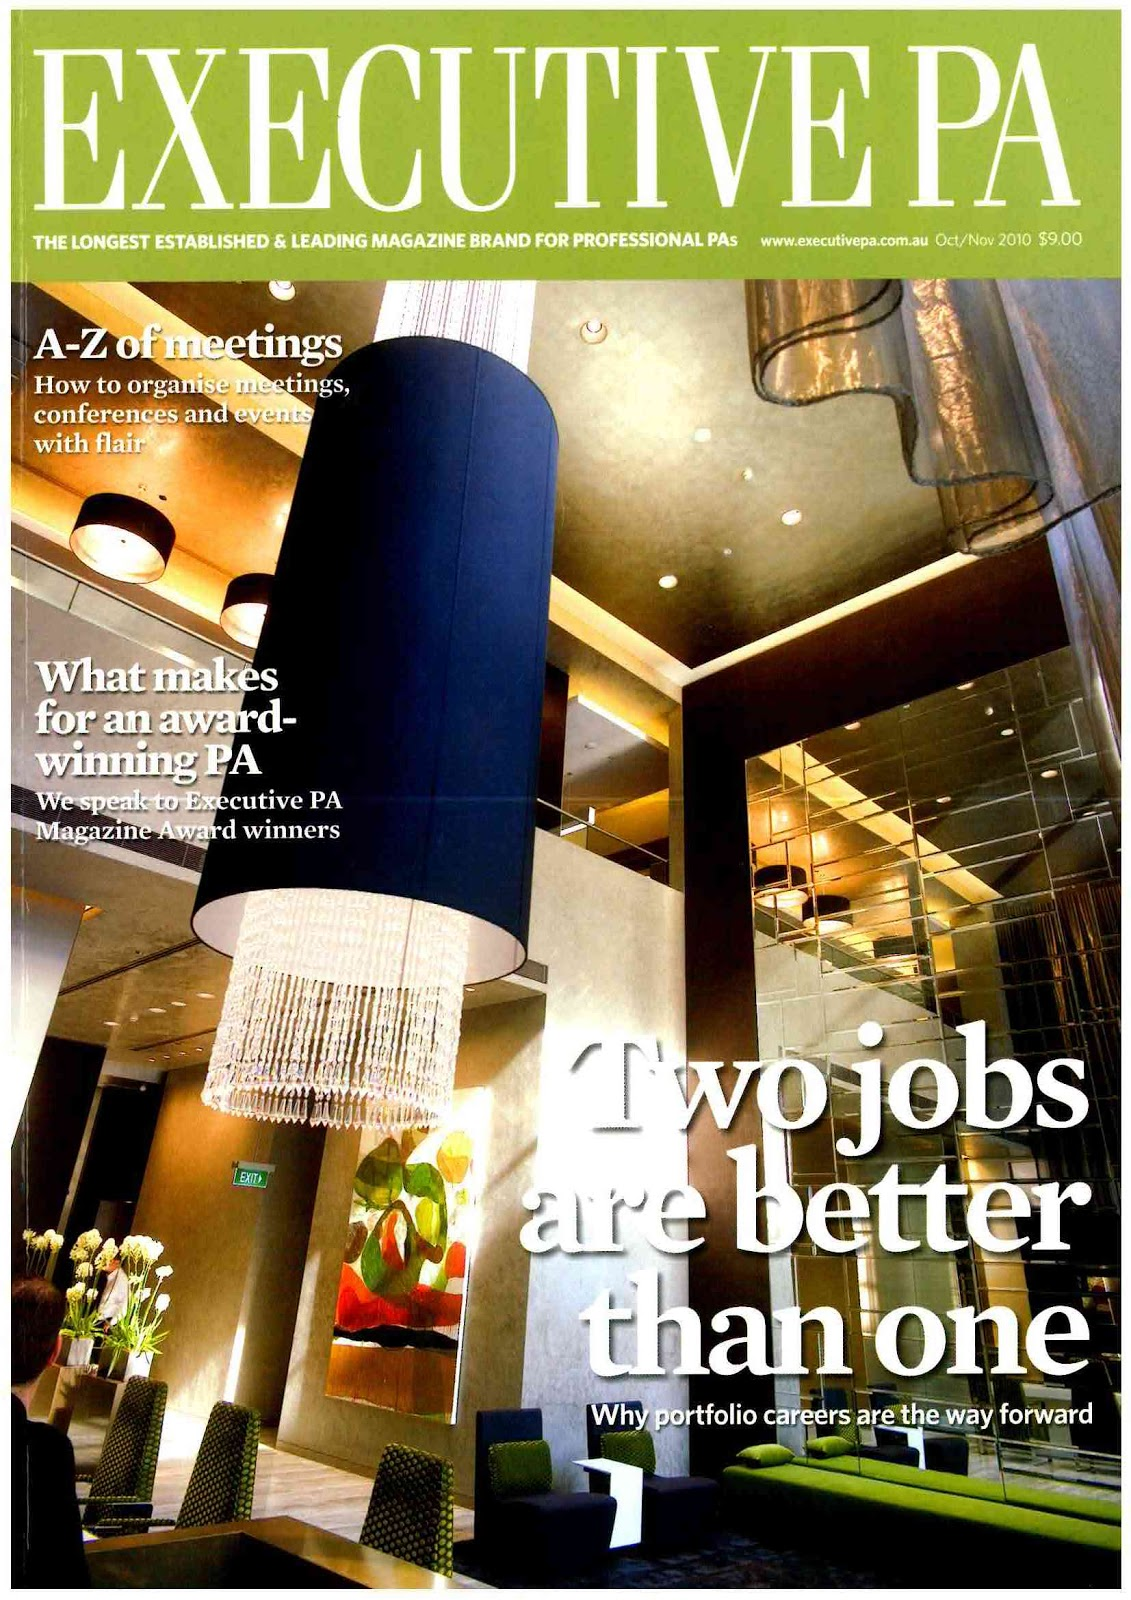 sadhbh warren portfolios and pas executive pa magazine piece featured cover story